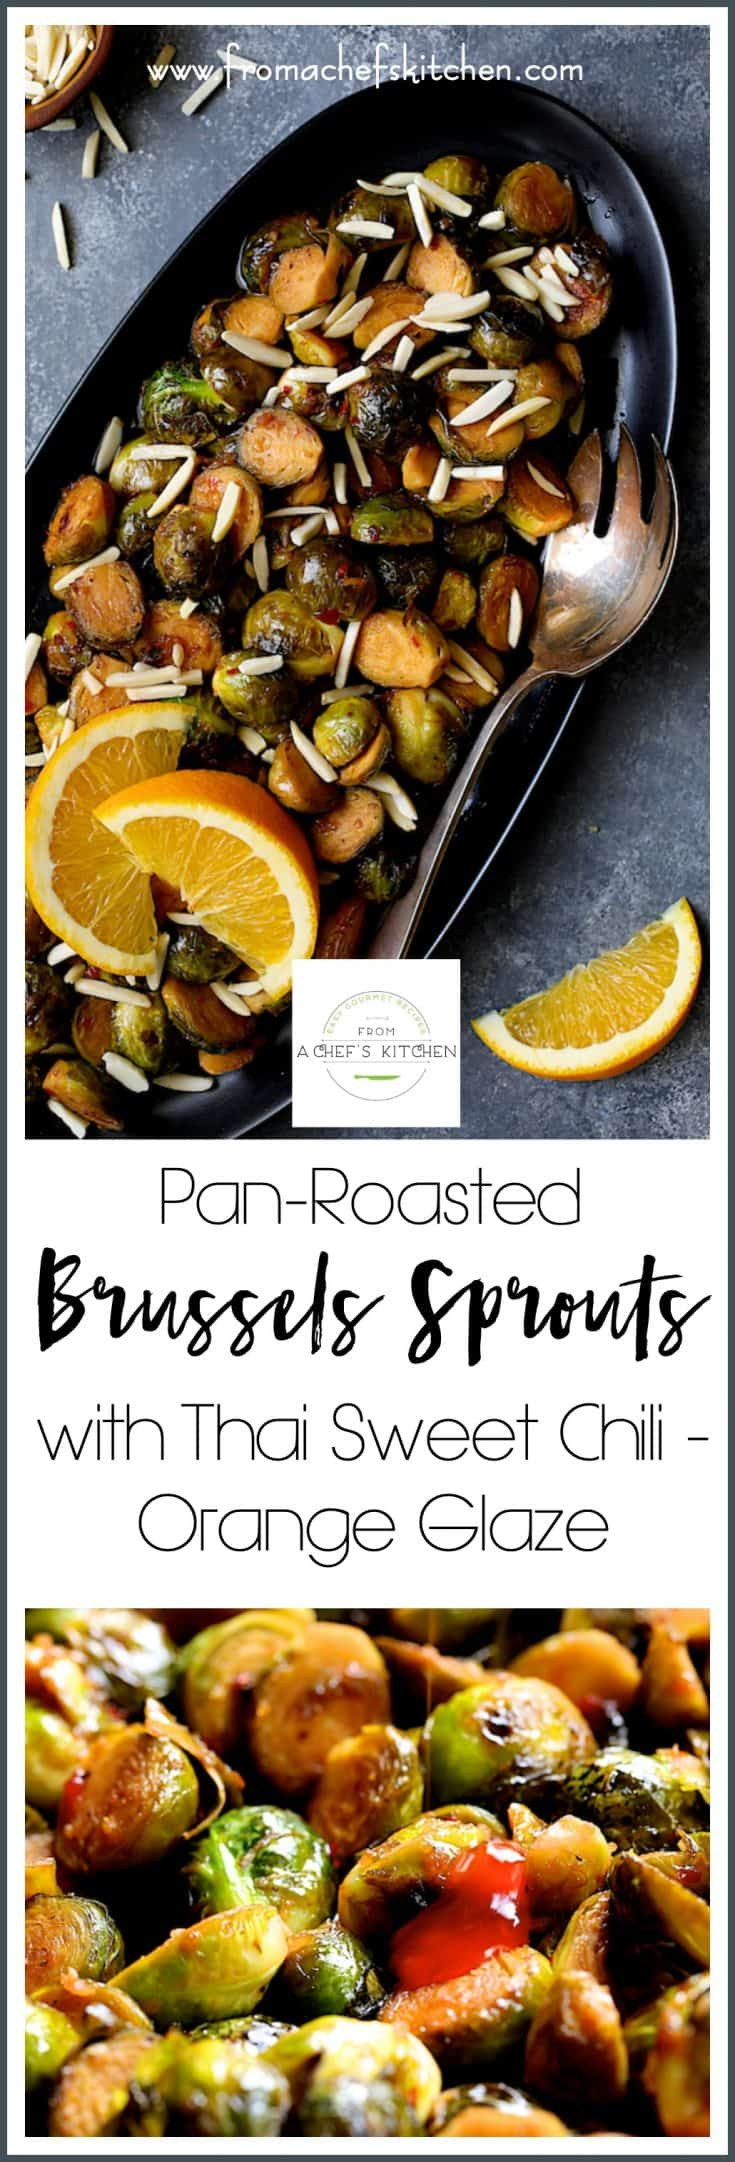 Pan-Roasted Brussels Sprouts with Thai Sweet Chili - Orange Glaze is a party in your mouth! This flavorful vegetable side dish is super easy to pull together on your stovetop! #brusselssprouts #brusselssproutsrecipes #Thai #Thaifood #vegetable #easyvegetablerecipes #sidedish